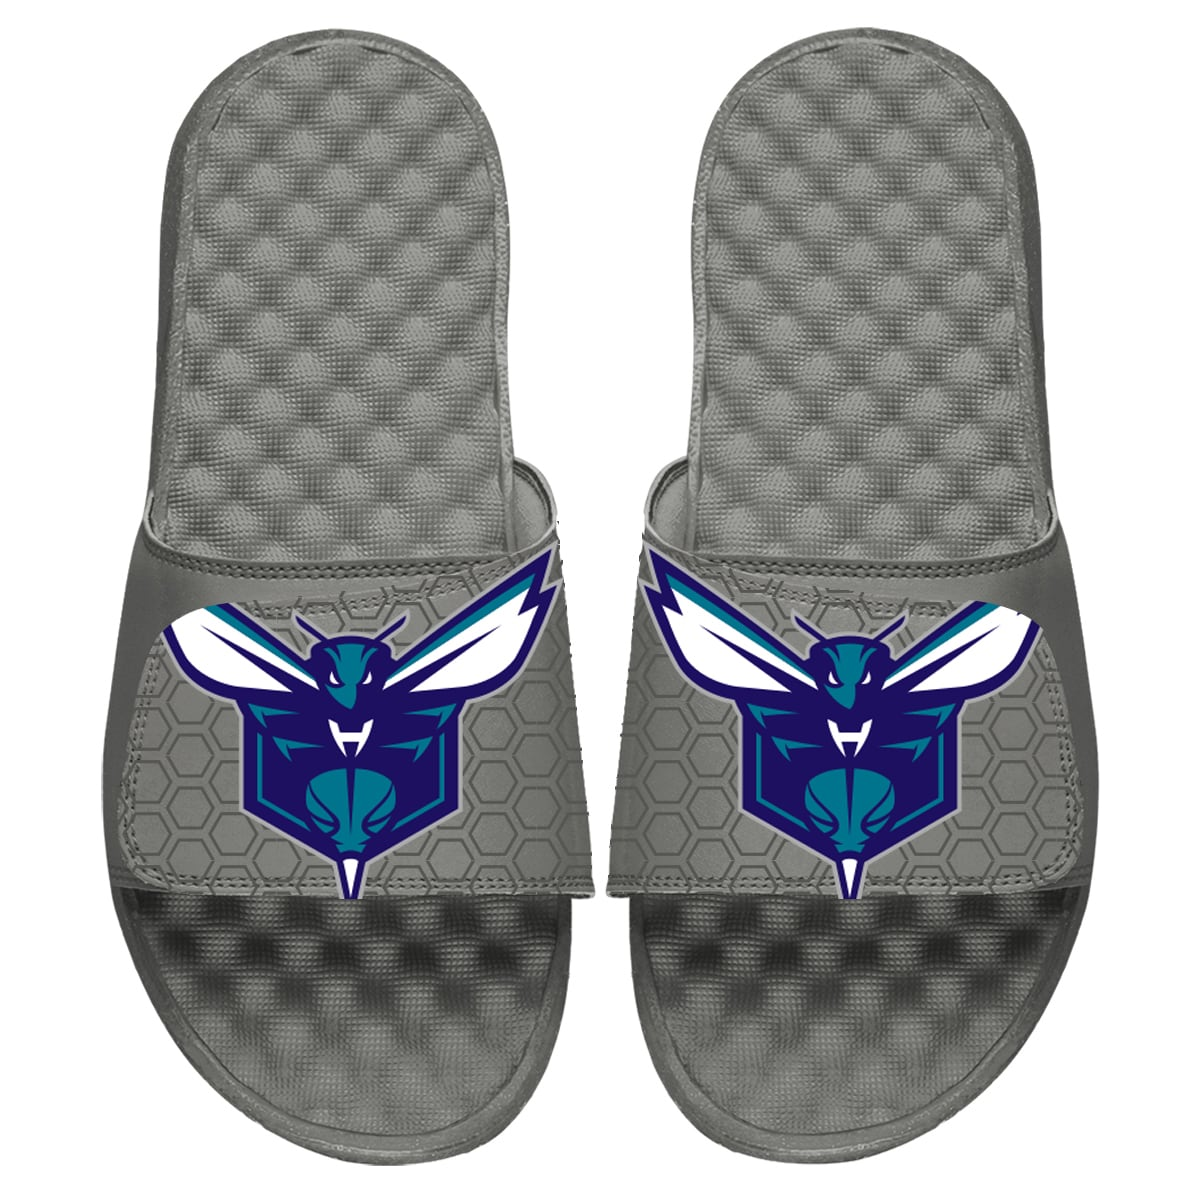 Charlotte Hornets ISlide Youth 2019/20 City Edition Slide Sandals - Gray